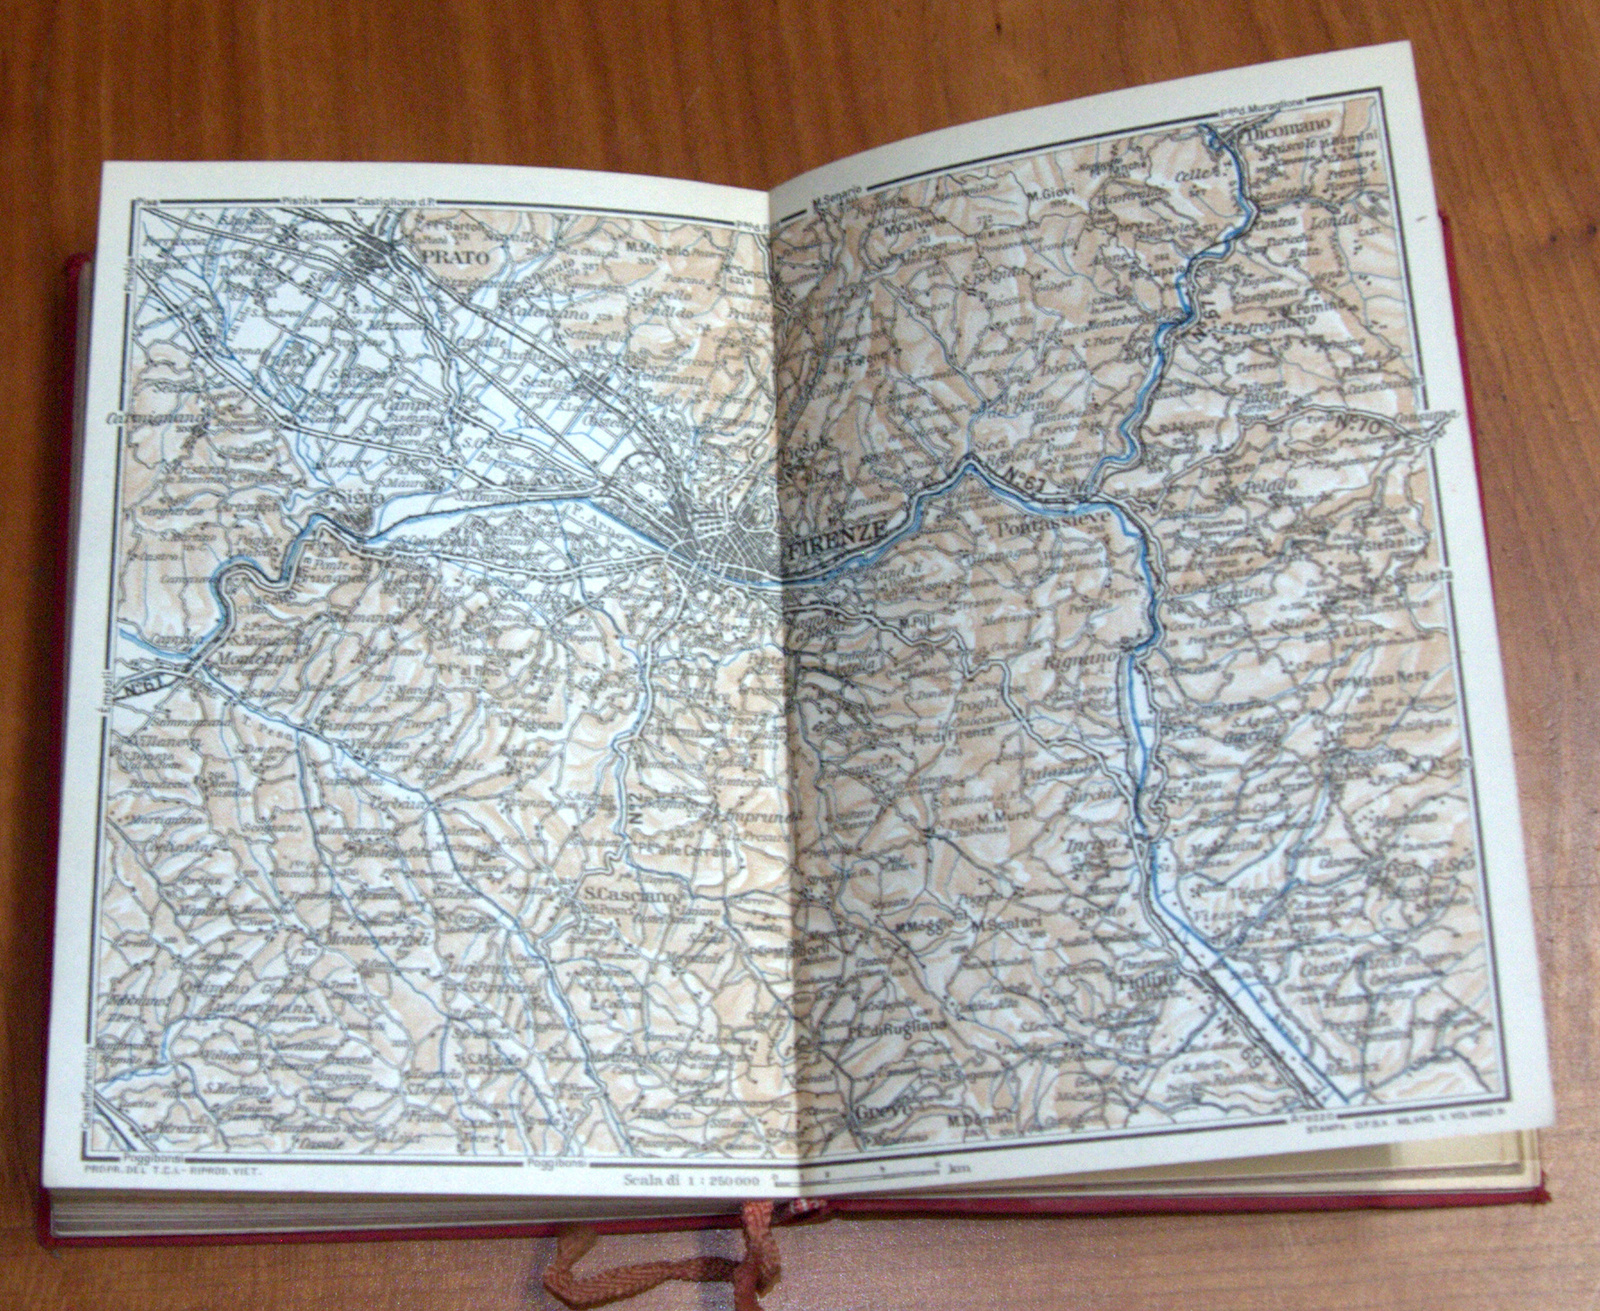 ITALY 1950 Florence Firenze E Dintorni TCI Travel Guide Maps Book 4th Edition